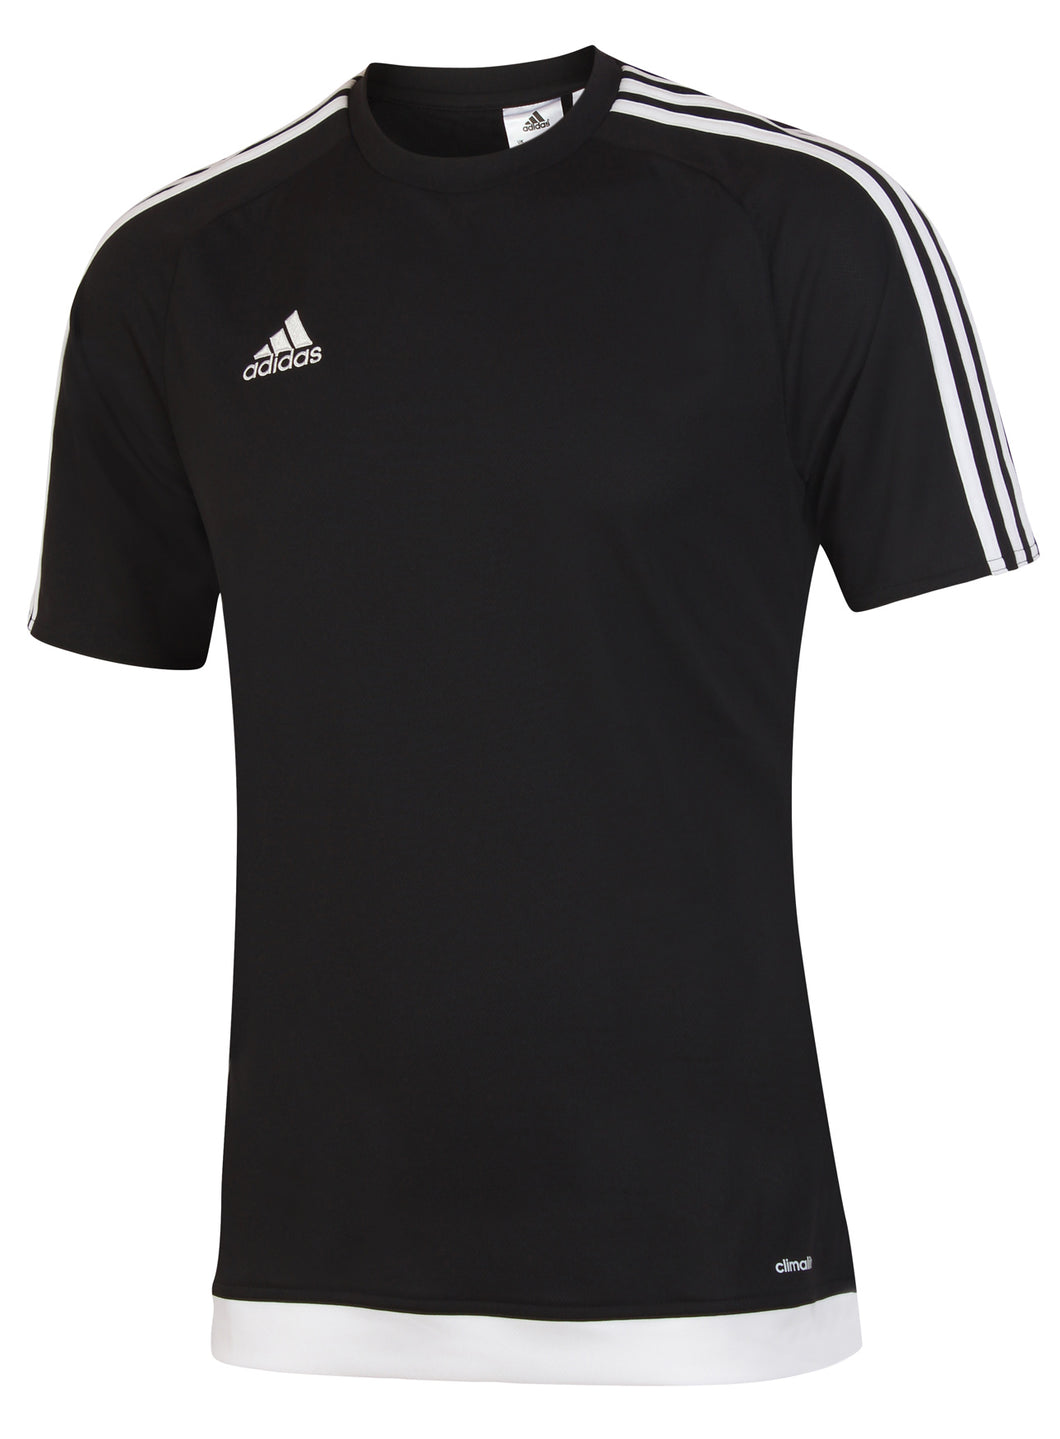 adidas Men's Estro 15 Black climalite Crew Training T-Shirt